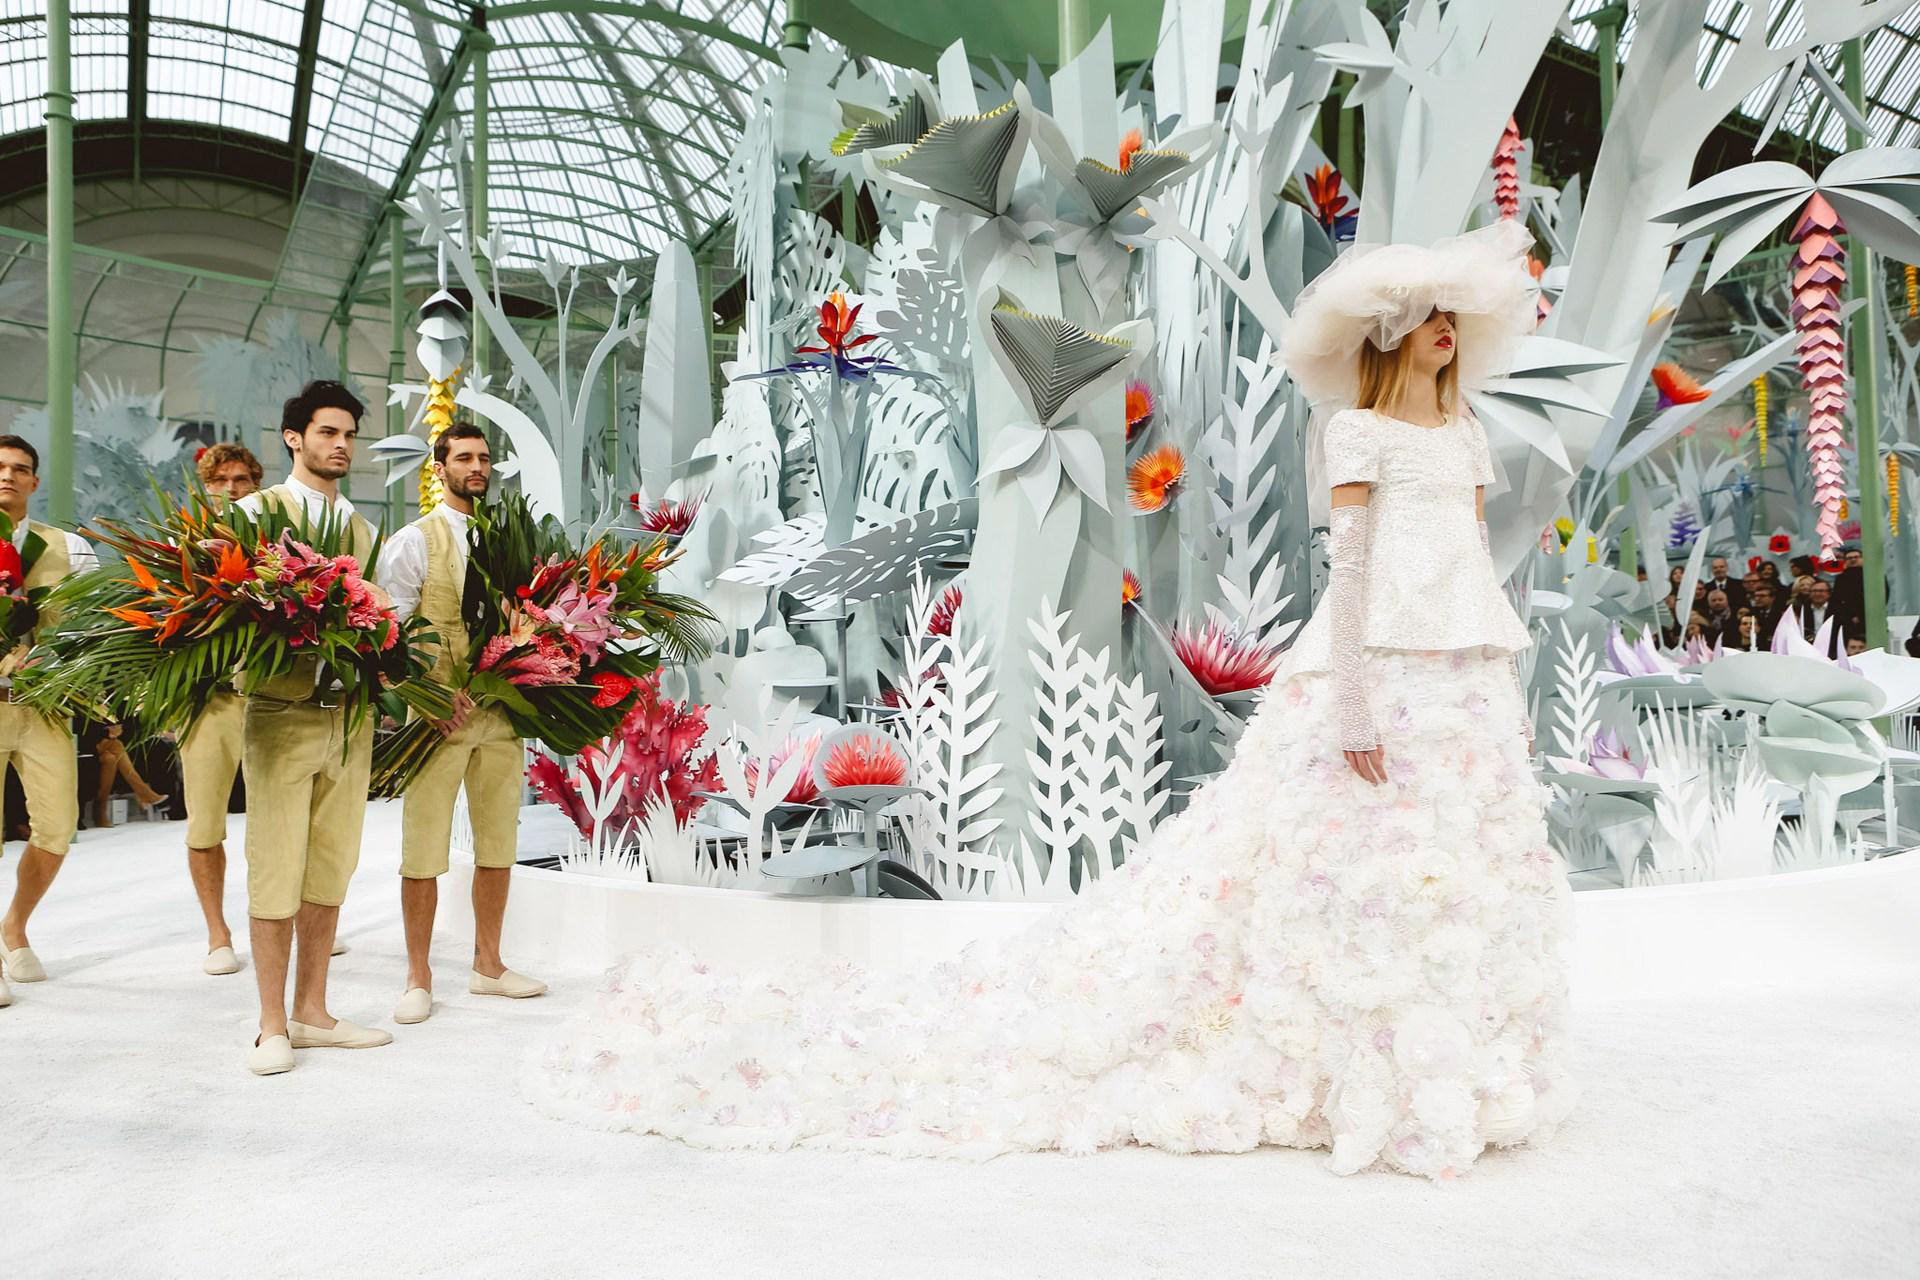 WATCH: Karl tell us what makes couture couture - http://t.co/OG3B5jrthT http://t.co/zpWahA8Y8D